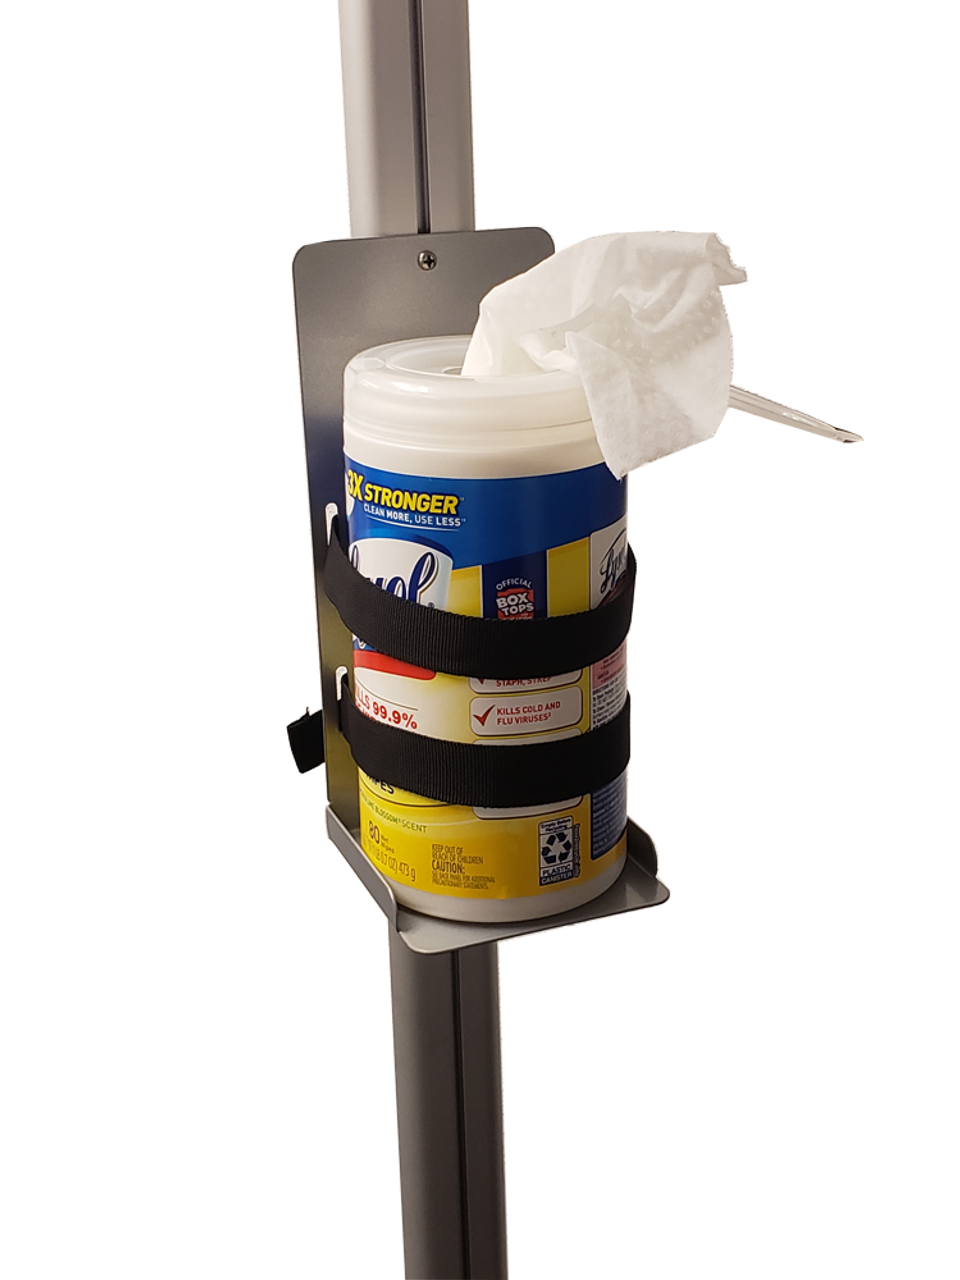 Shelf works great for dispensing cleaning wipes at retail store entrances and at facilities.